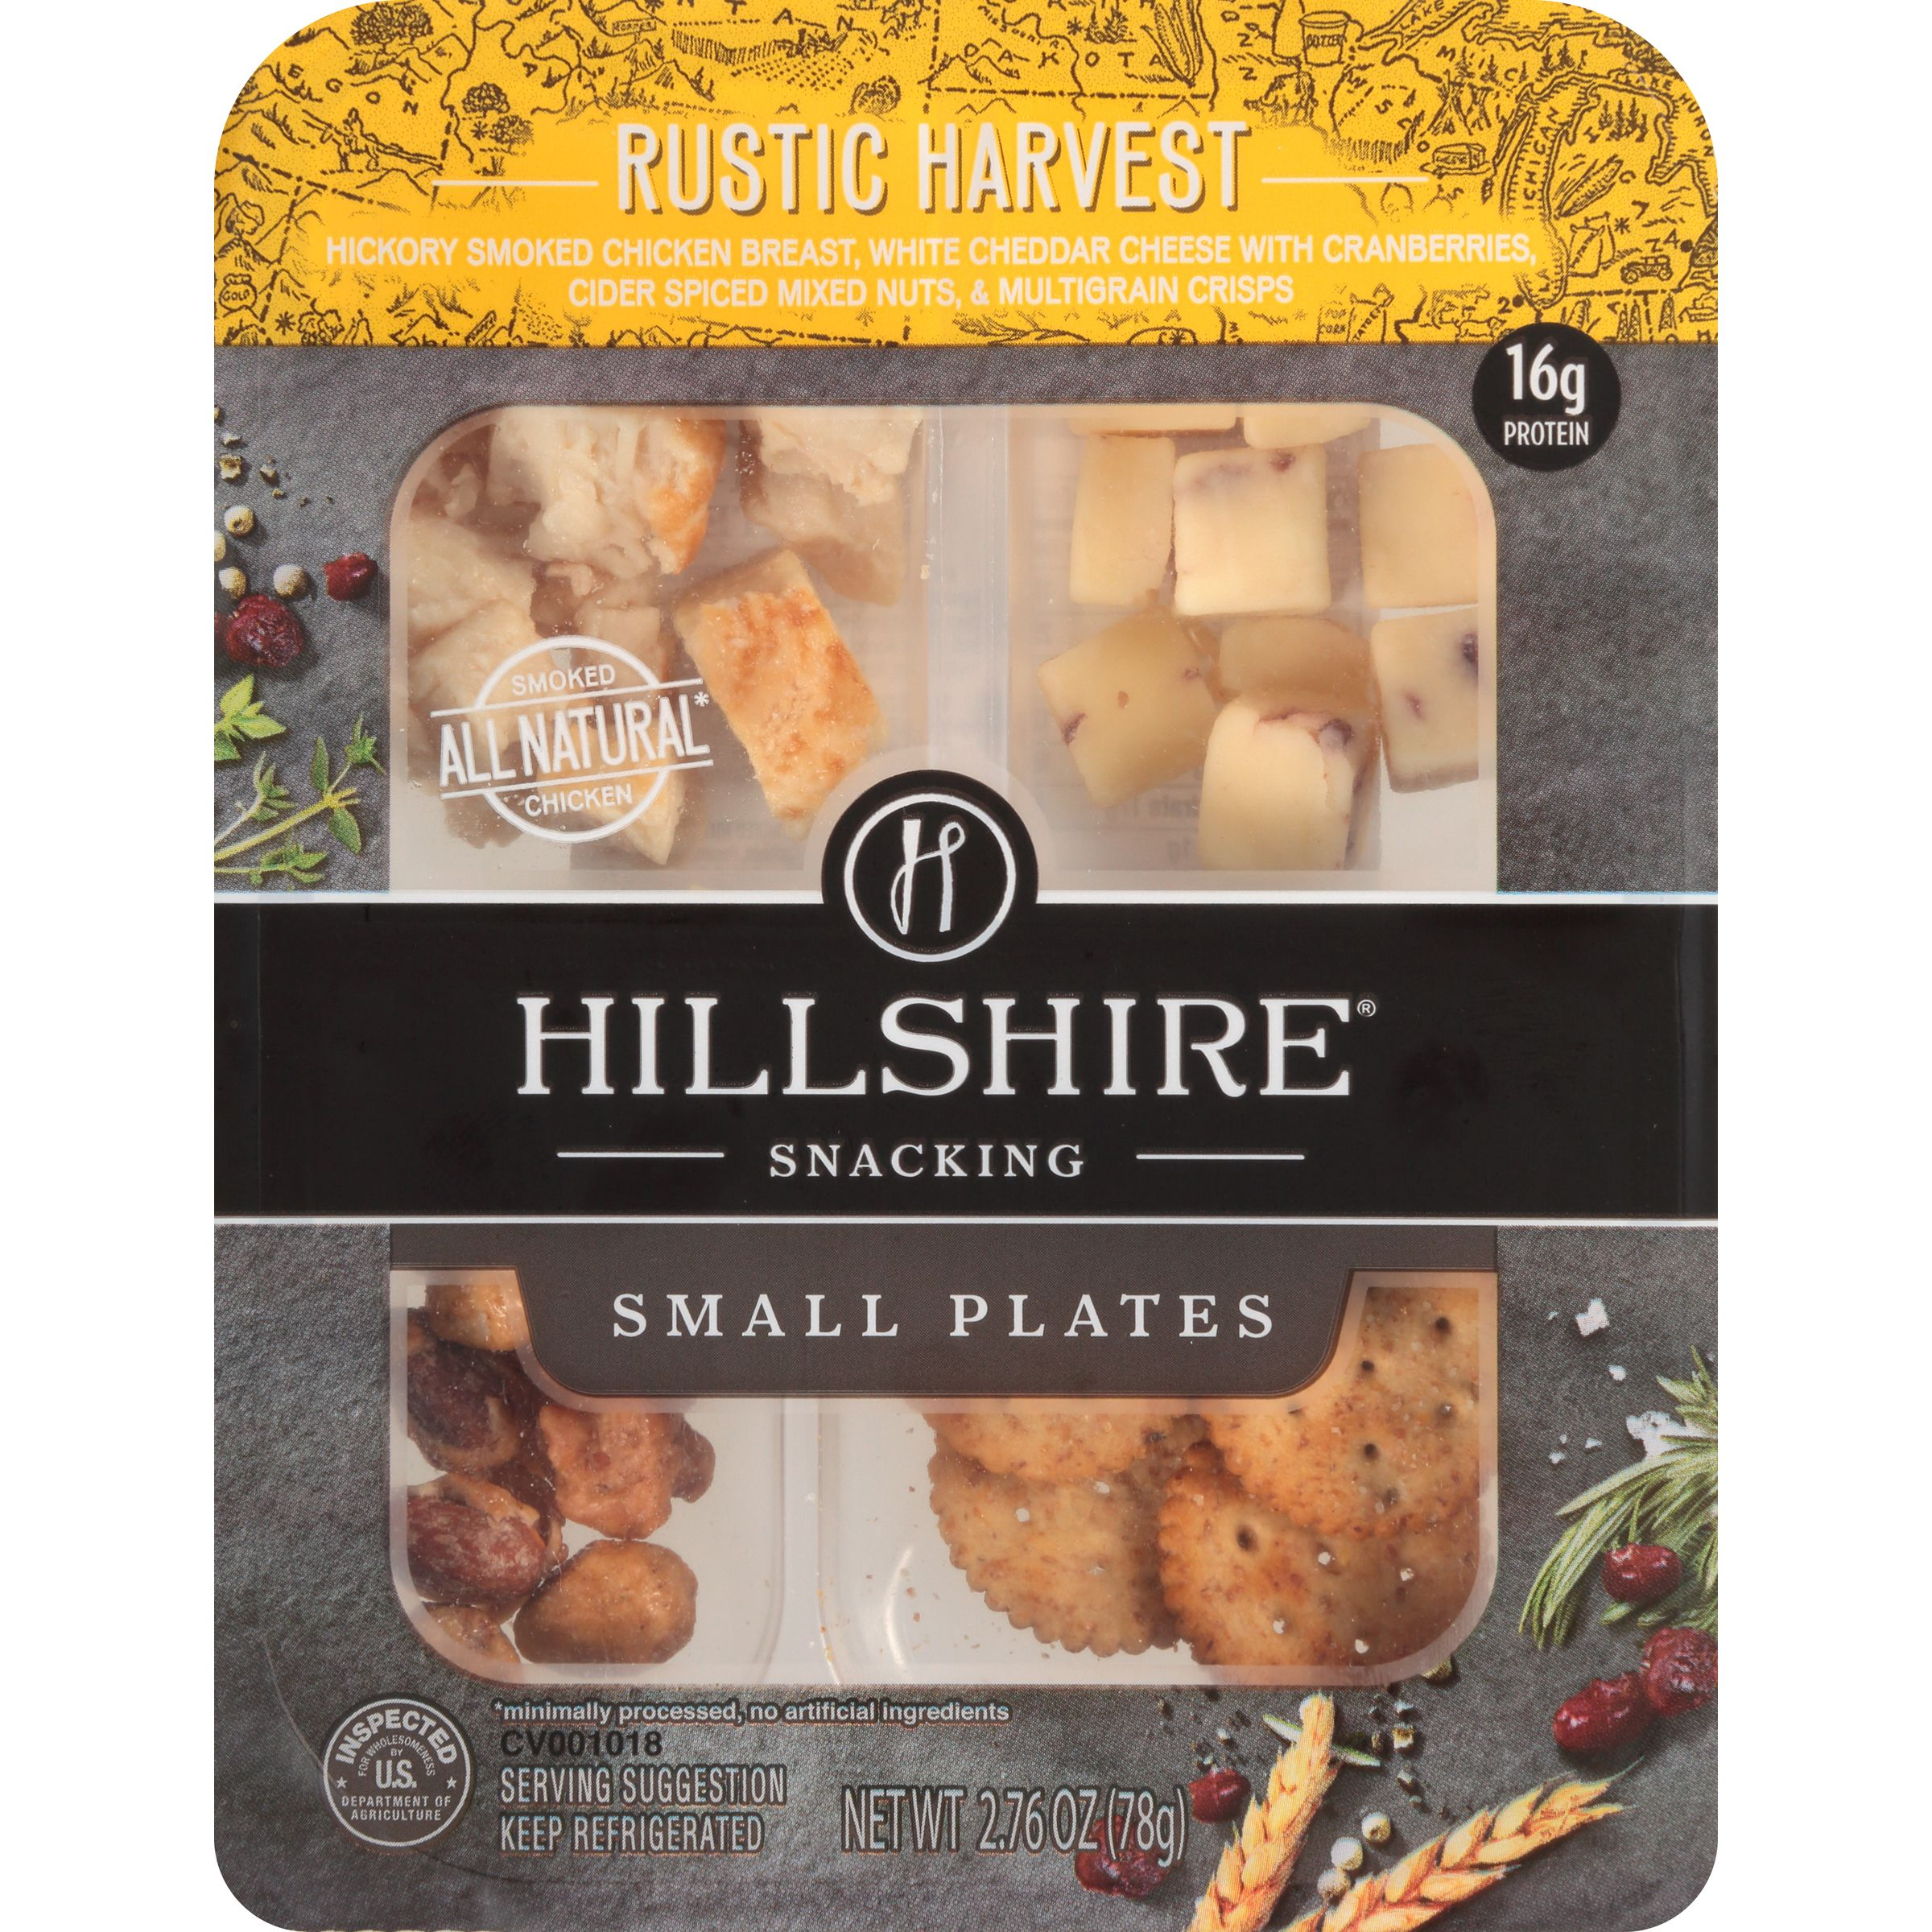 Hillshire Snacking Small Plates Rustic Harvest, 2.76 Oz.